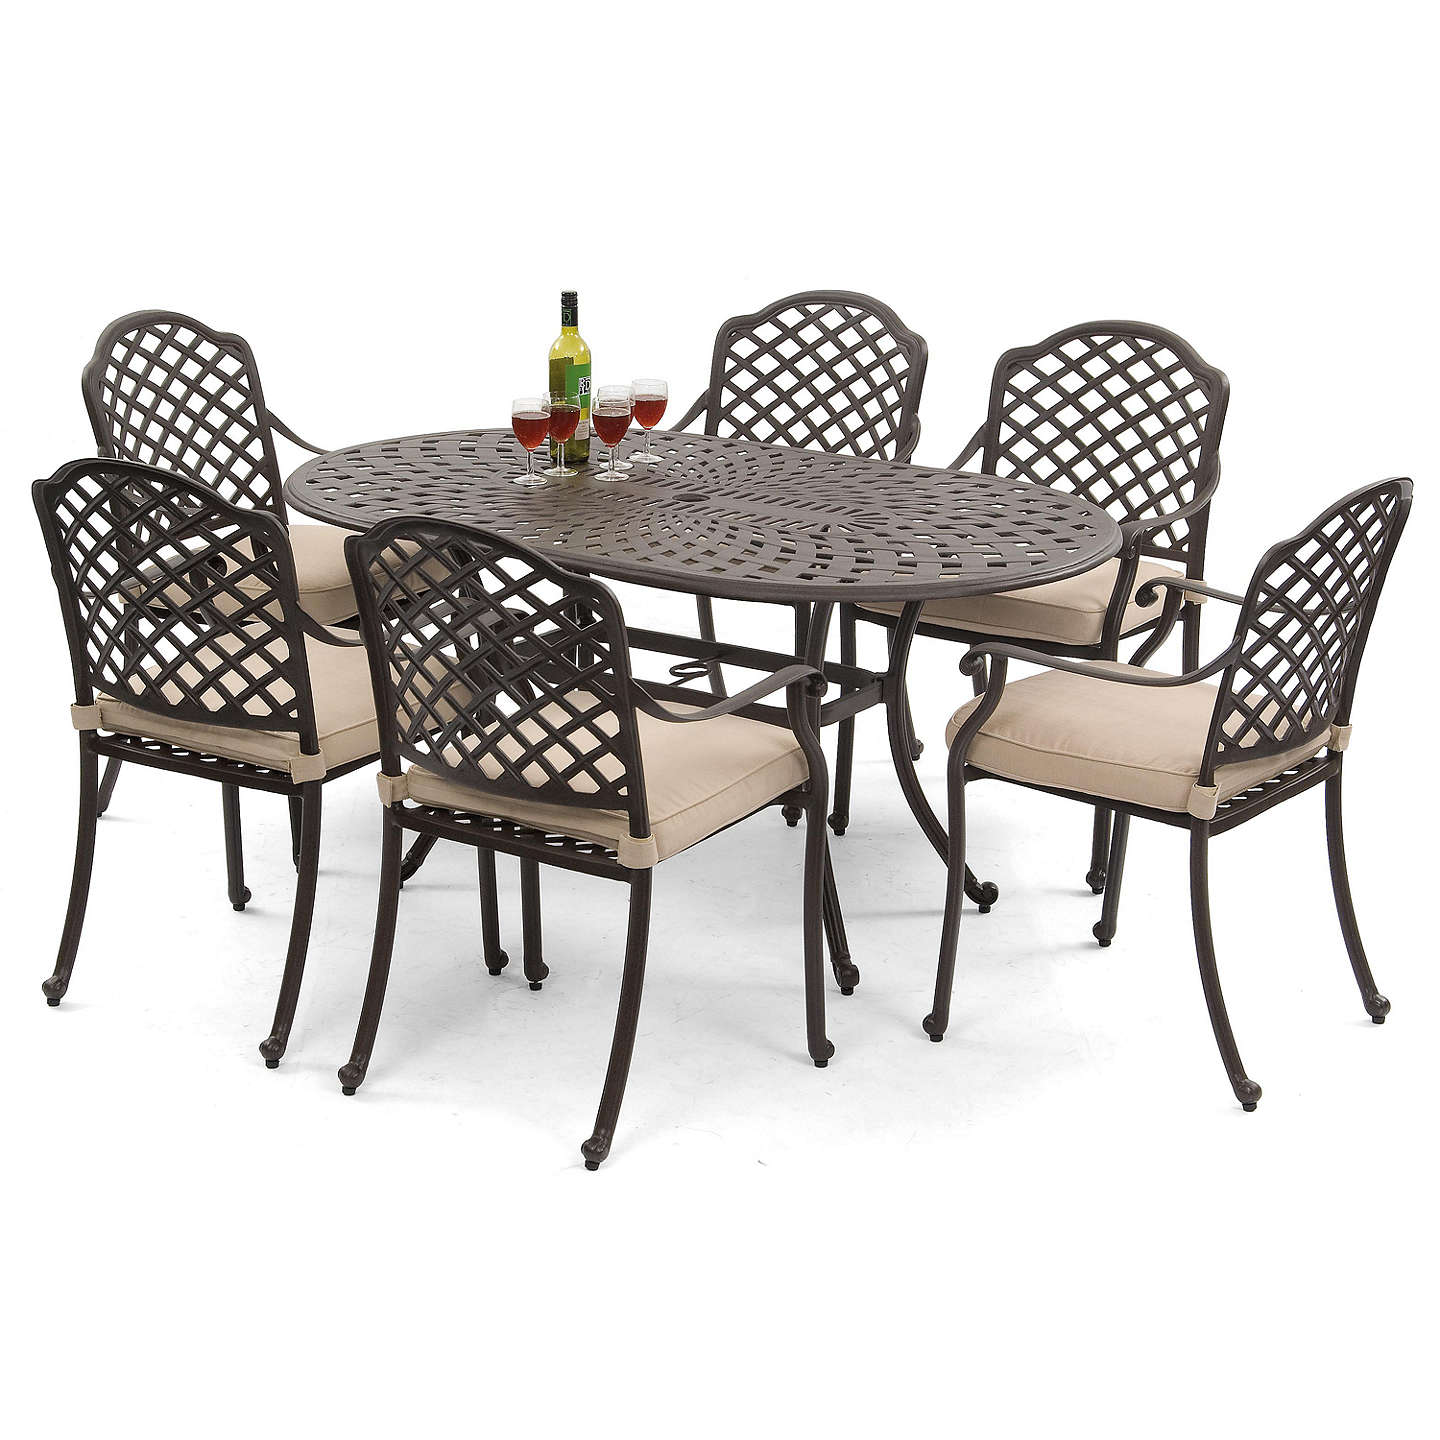 Suntime Buckingham 6 Seater Garden Dining Table and Chairs Set at